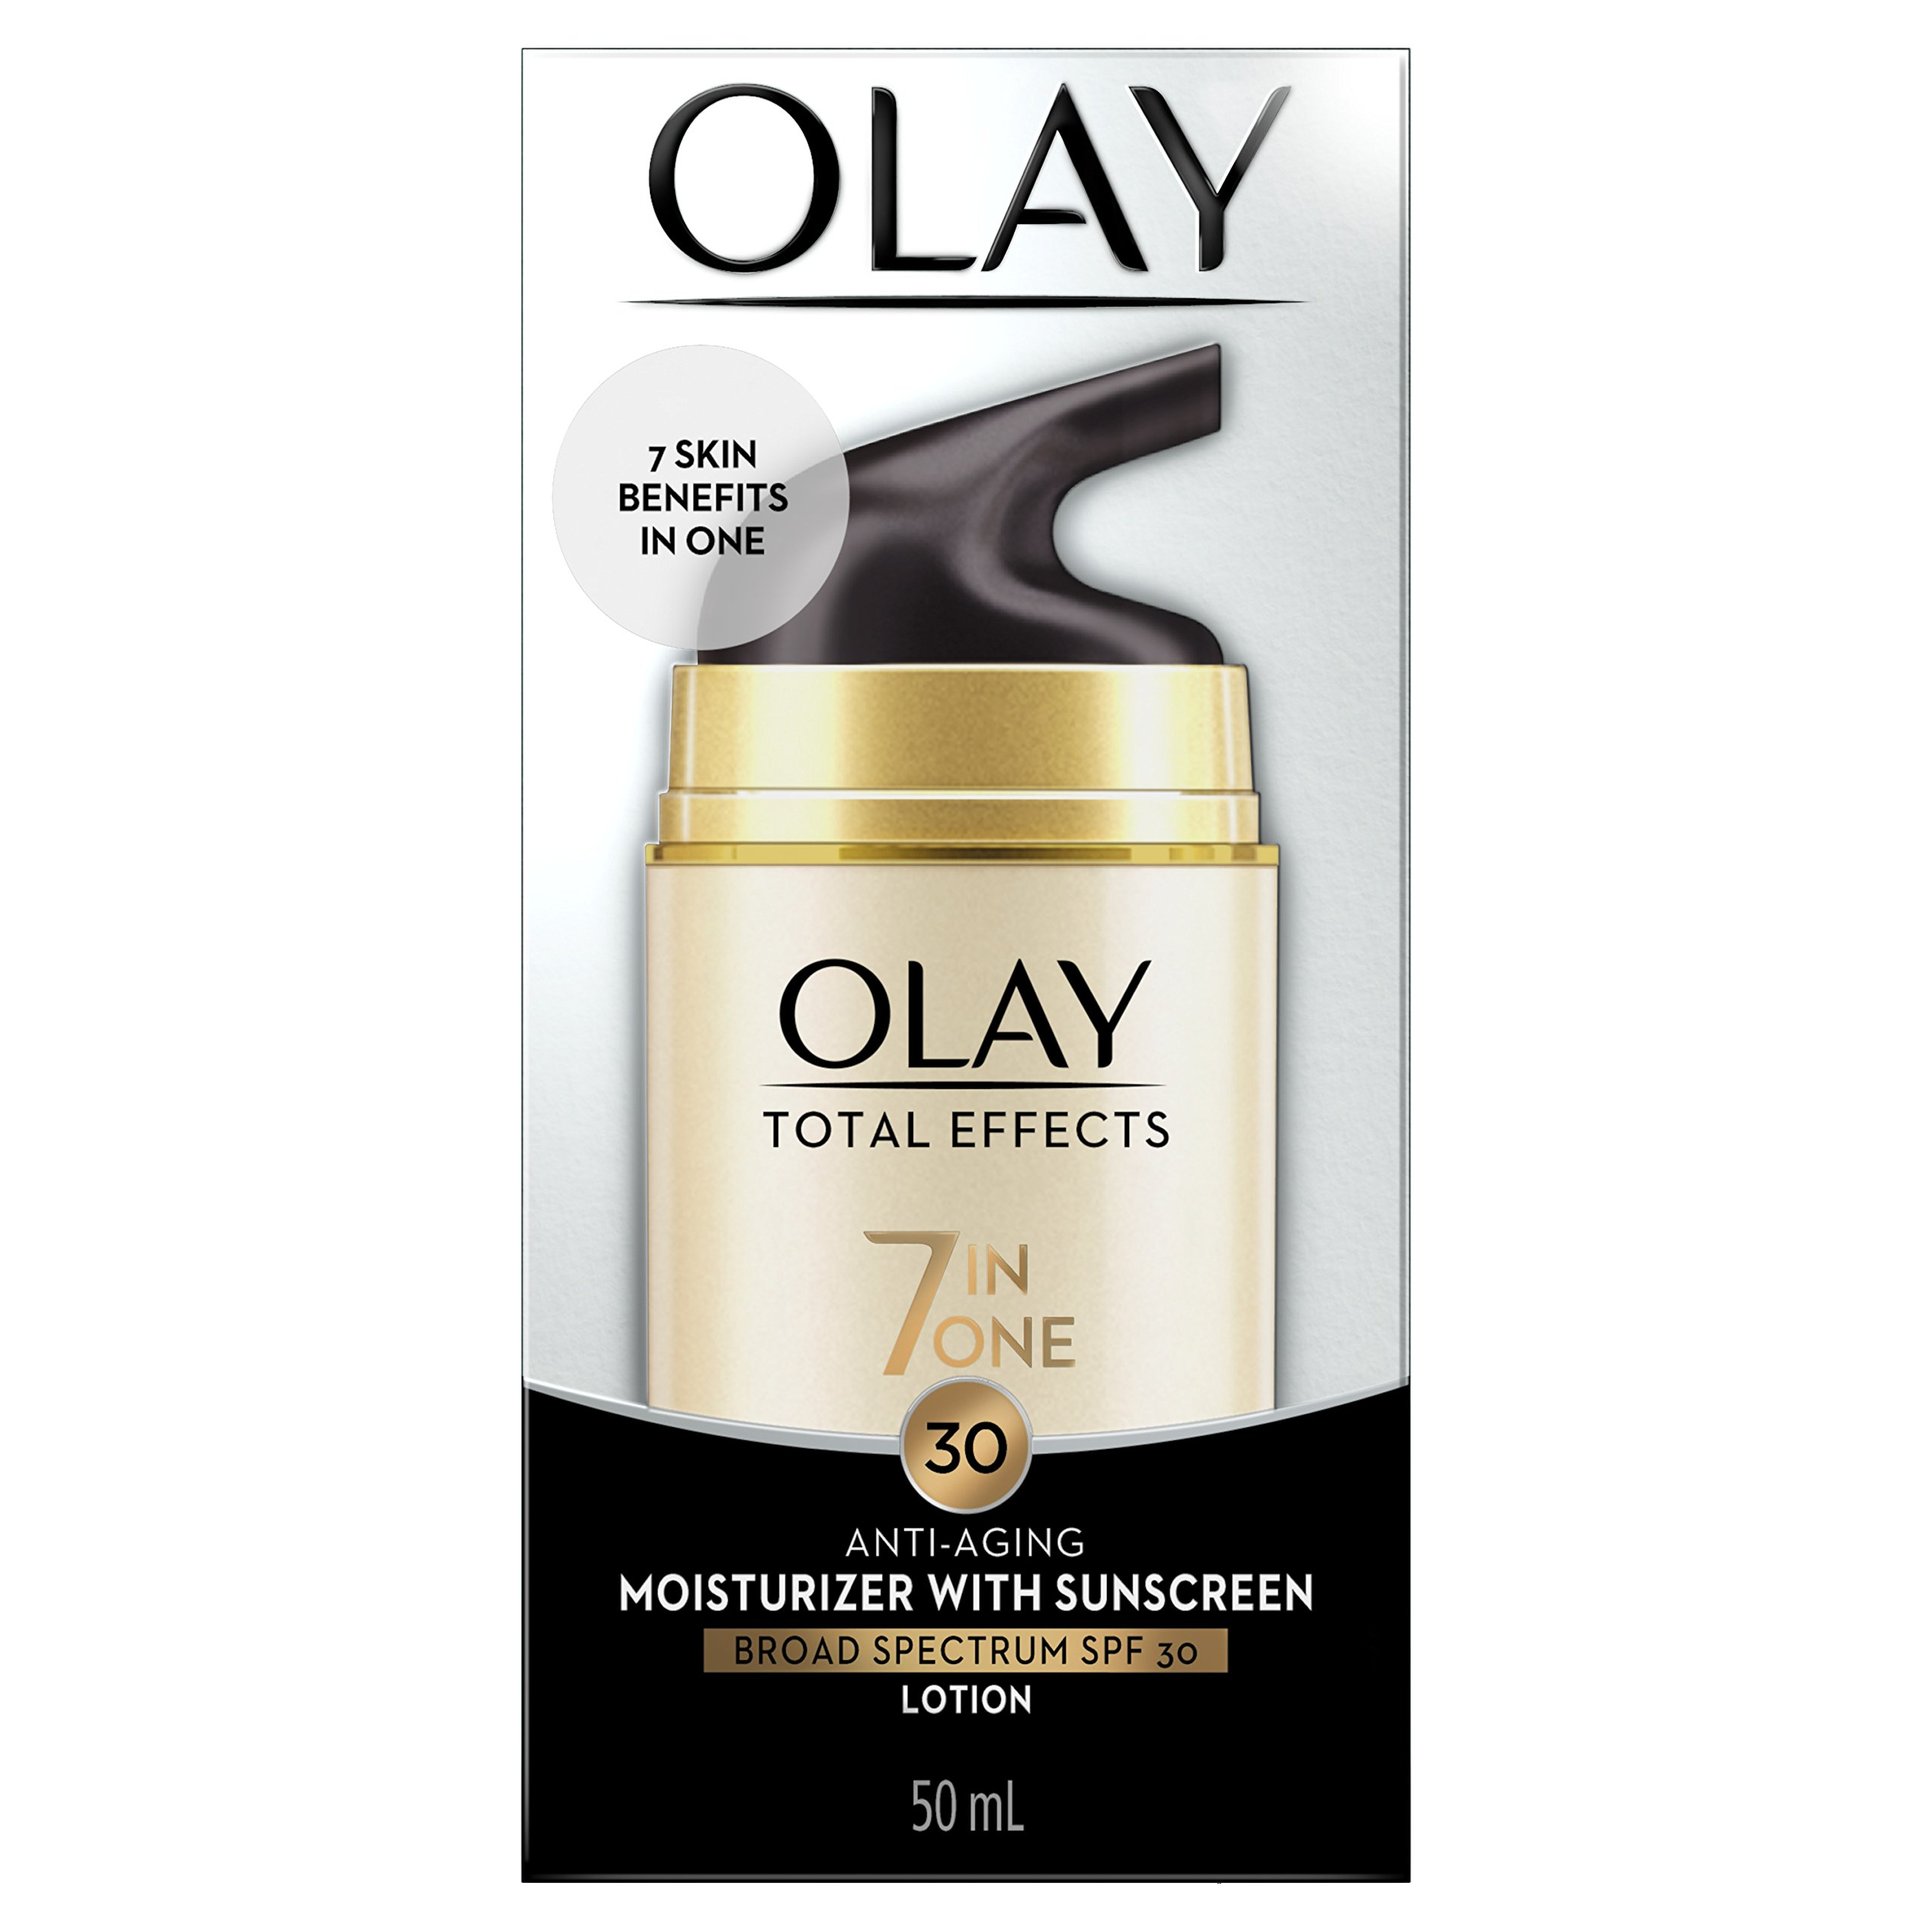 Olay Total Effects 7-in-1 Anti-Aging Daily Face Moisturizer With SPF 30, 1.7 fl oz by Olay (Image #3)